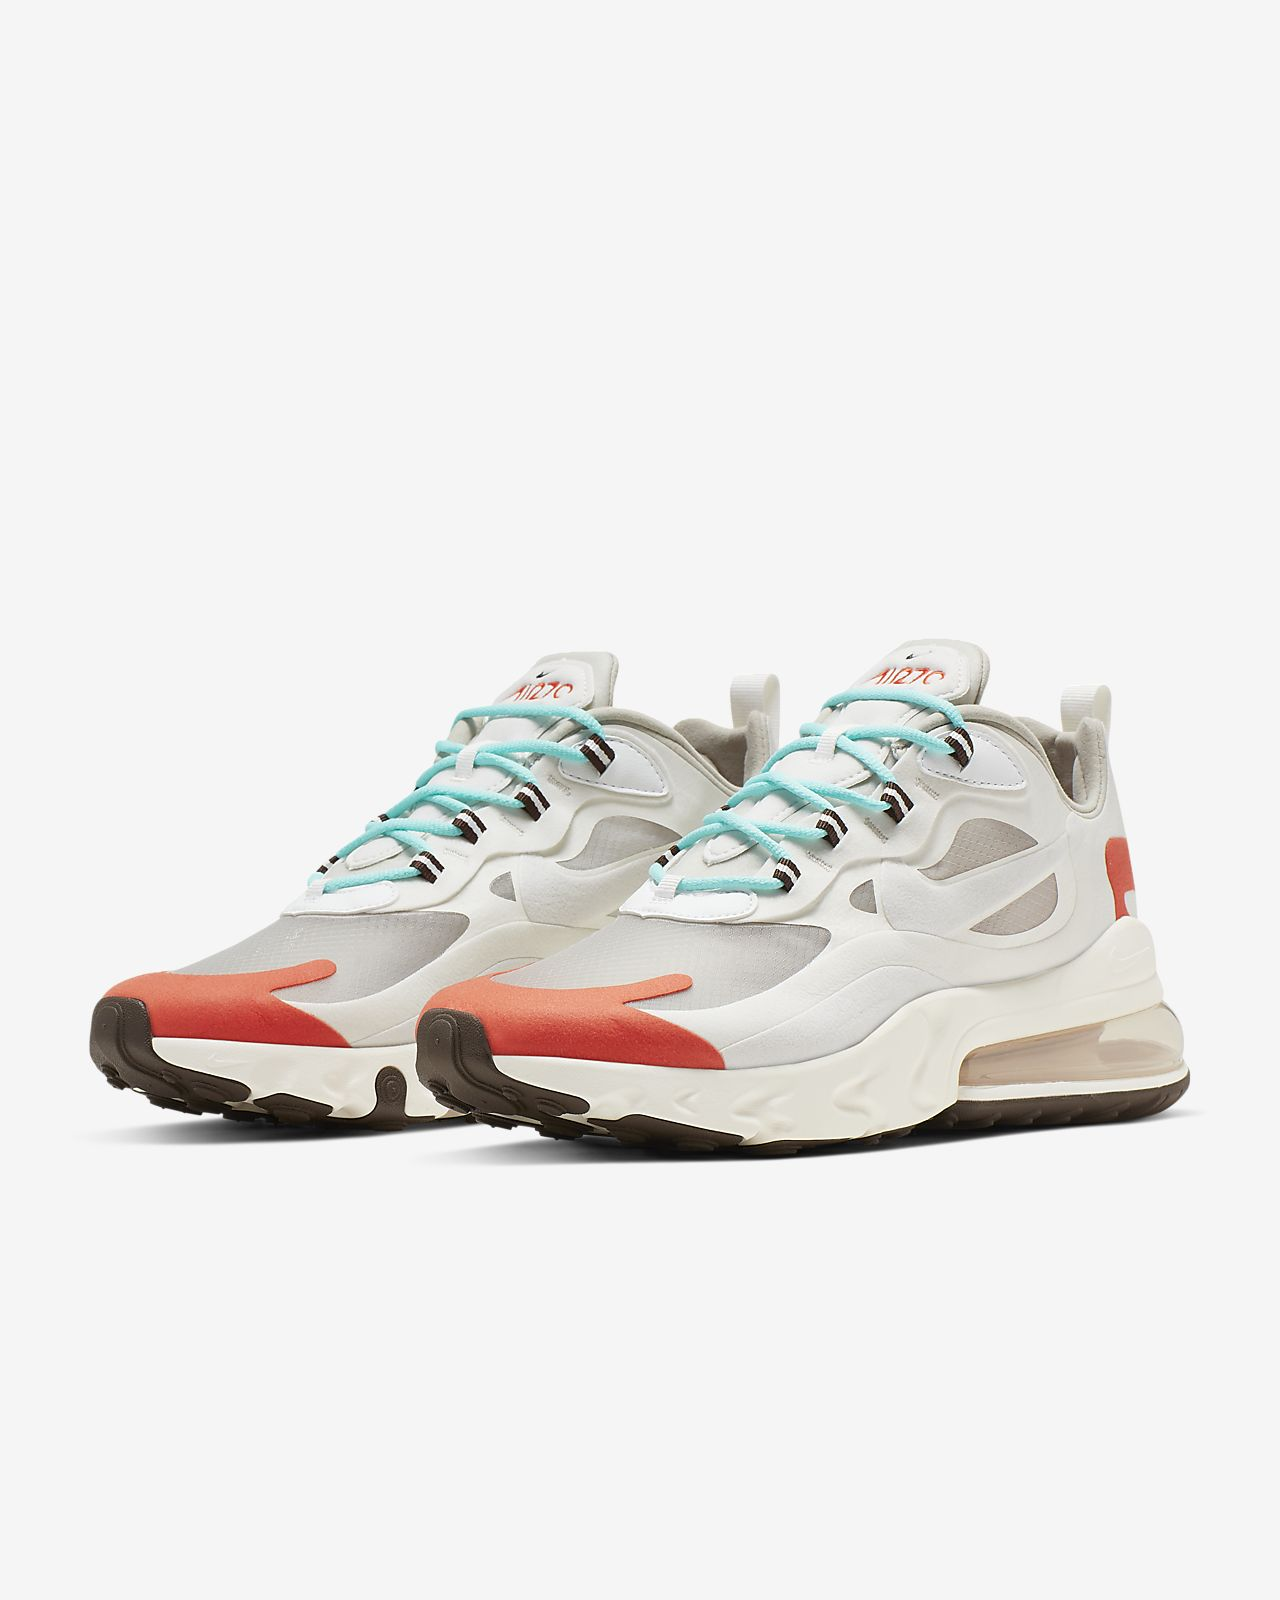 Chaussure Nike Air Max 270 React (Mid Century Art) pour Homme